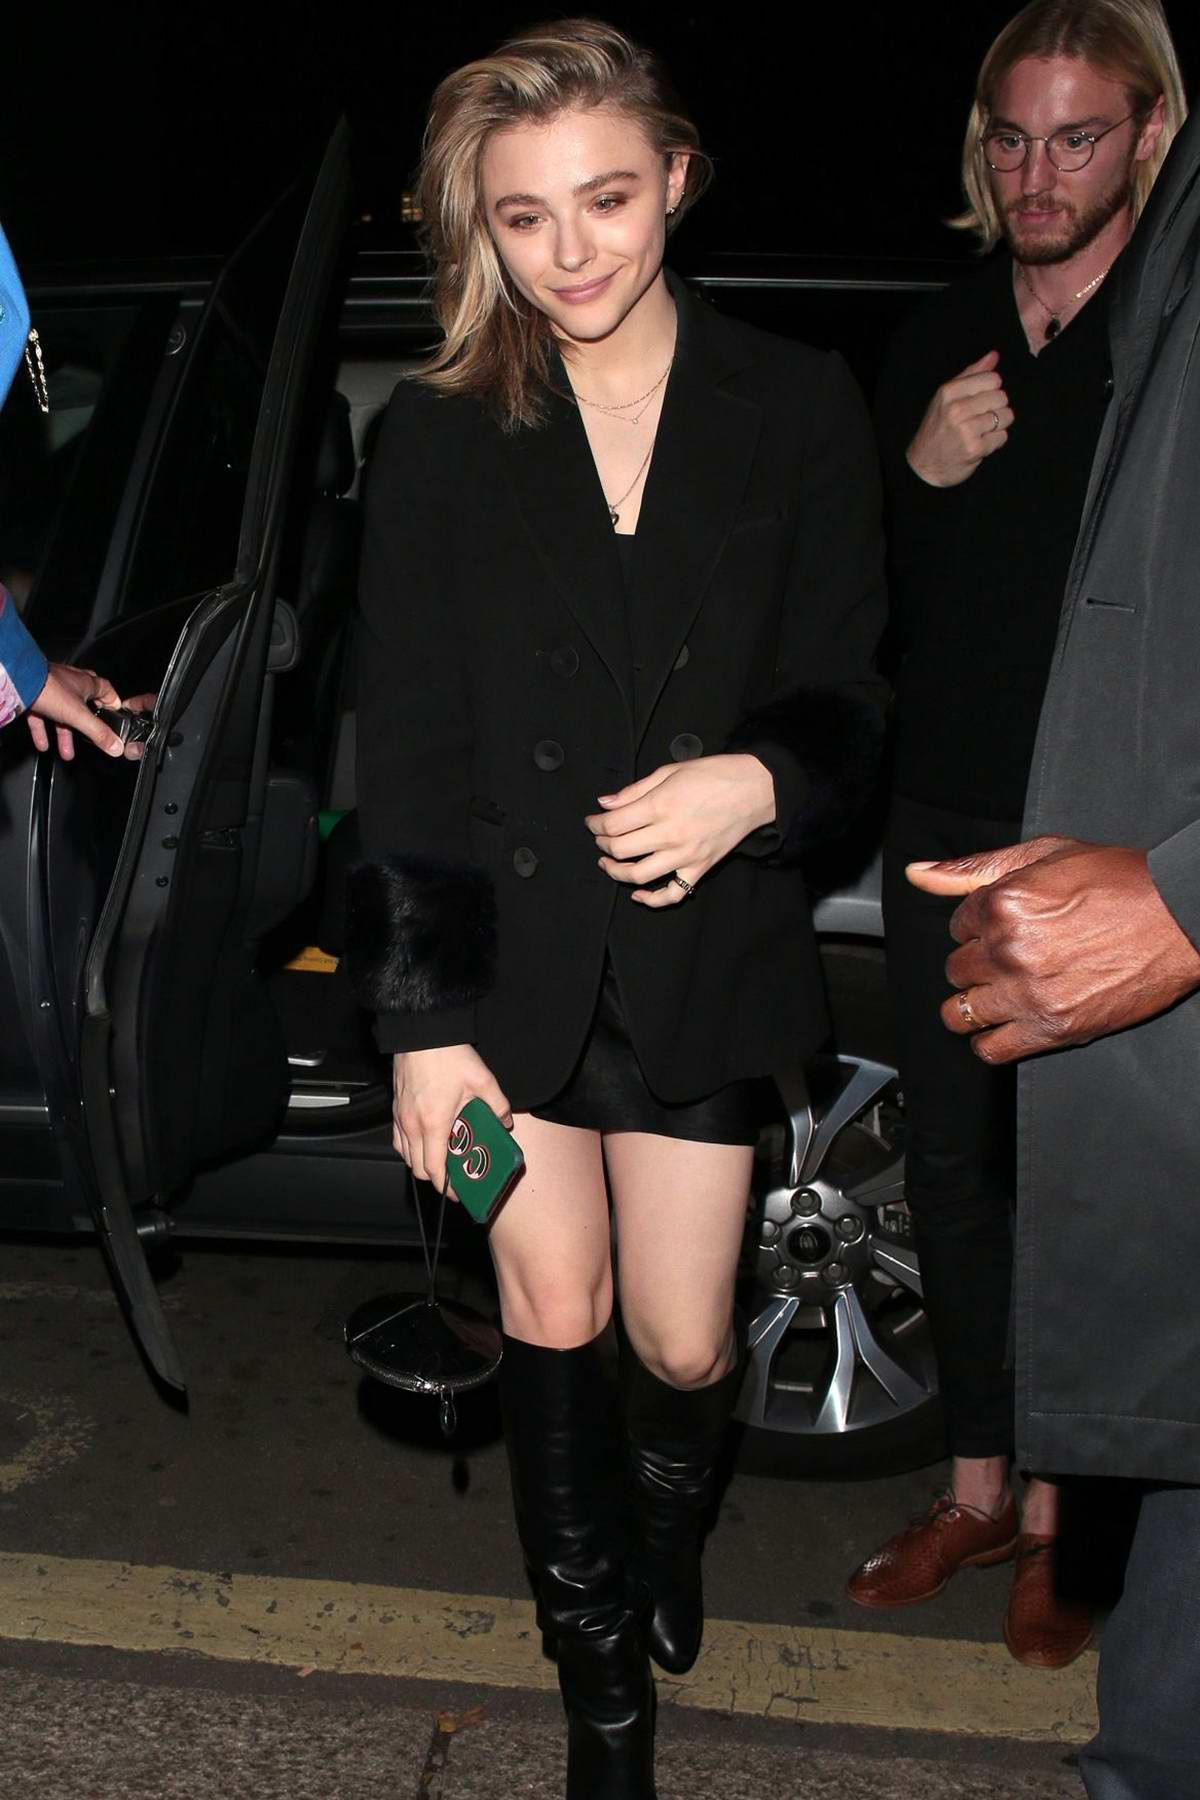 Chloe Grace Moretz dressed in all-black as she arrives at Annabel's in London, UK